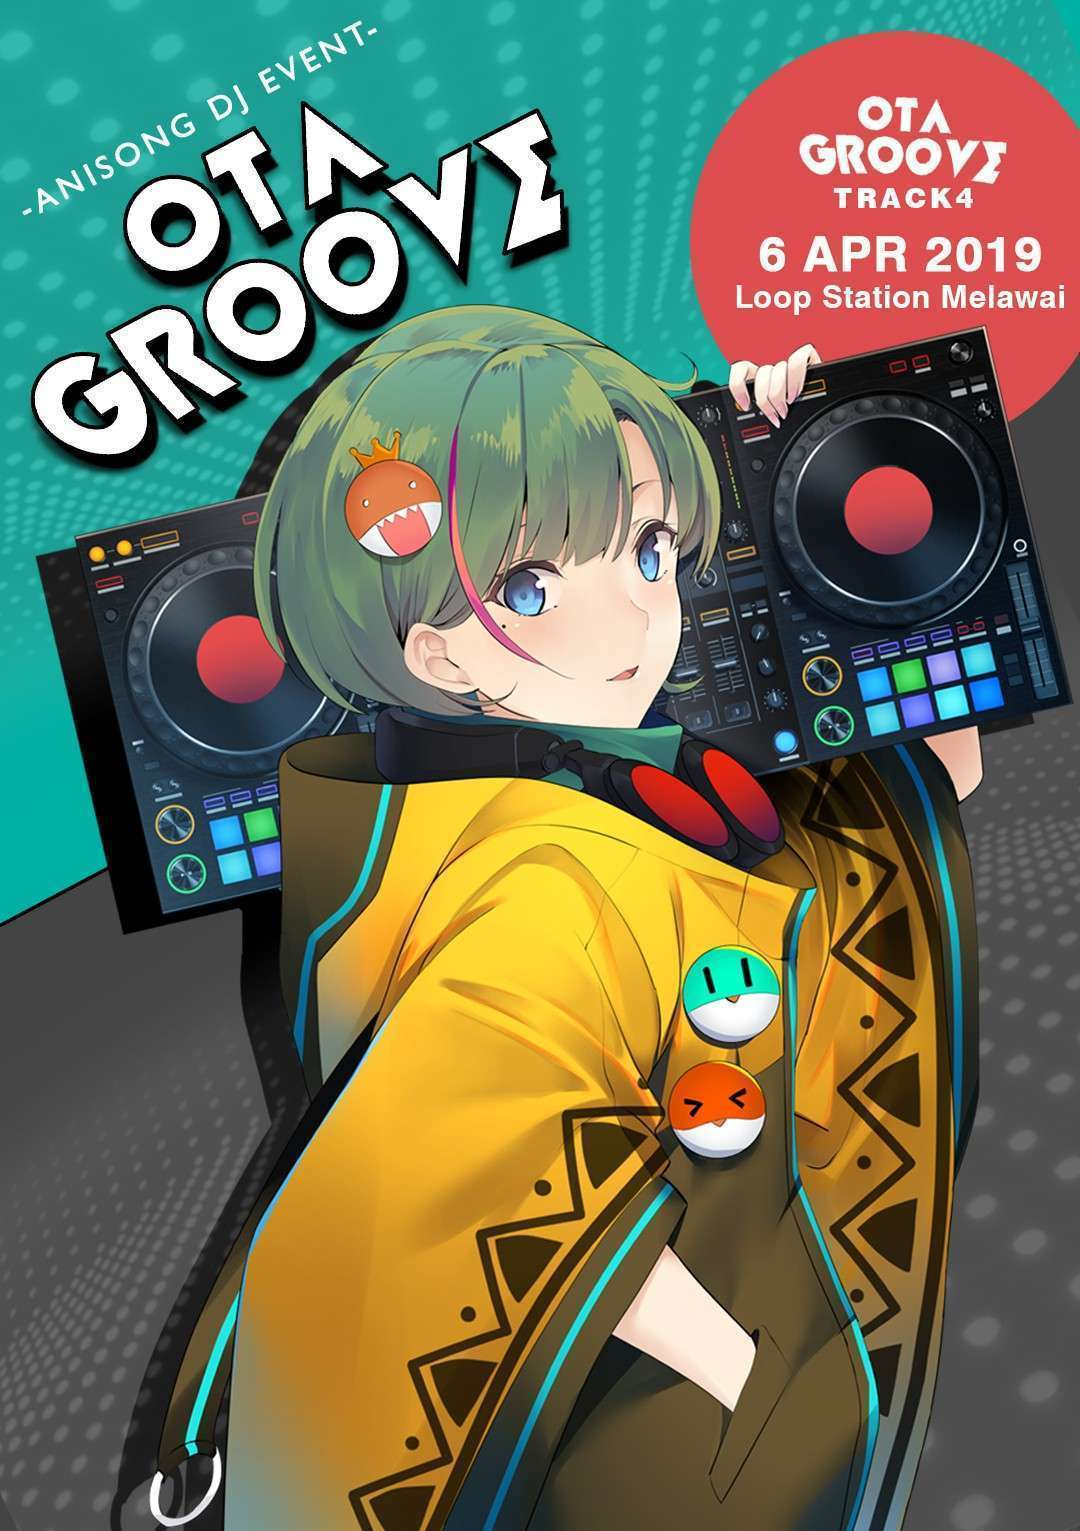 Otagroove Track 4 - 6 April 2019